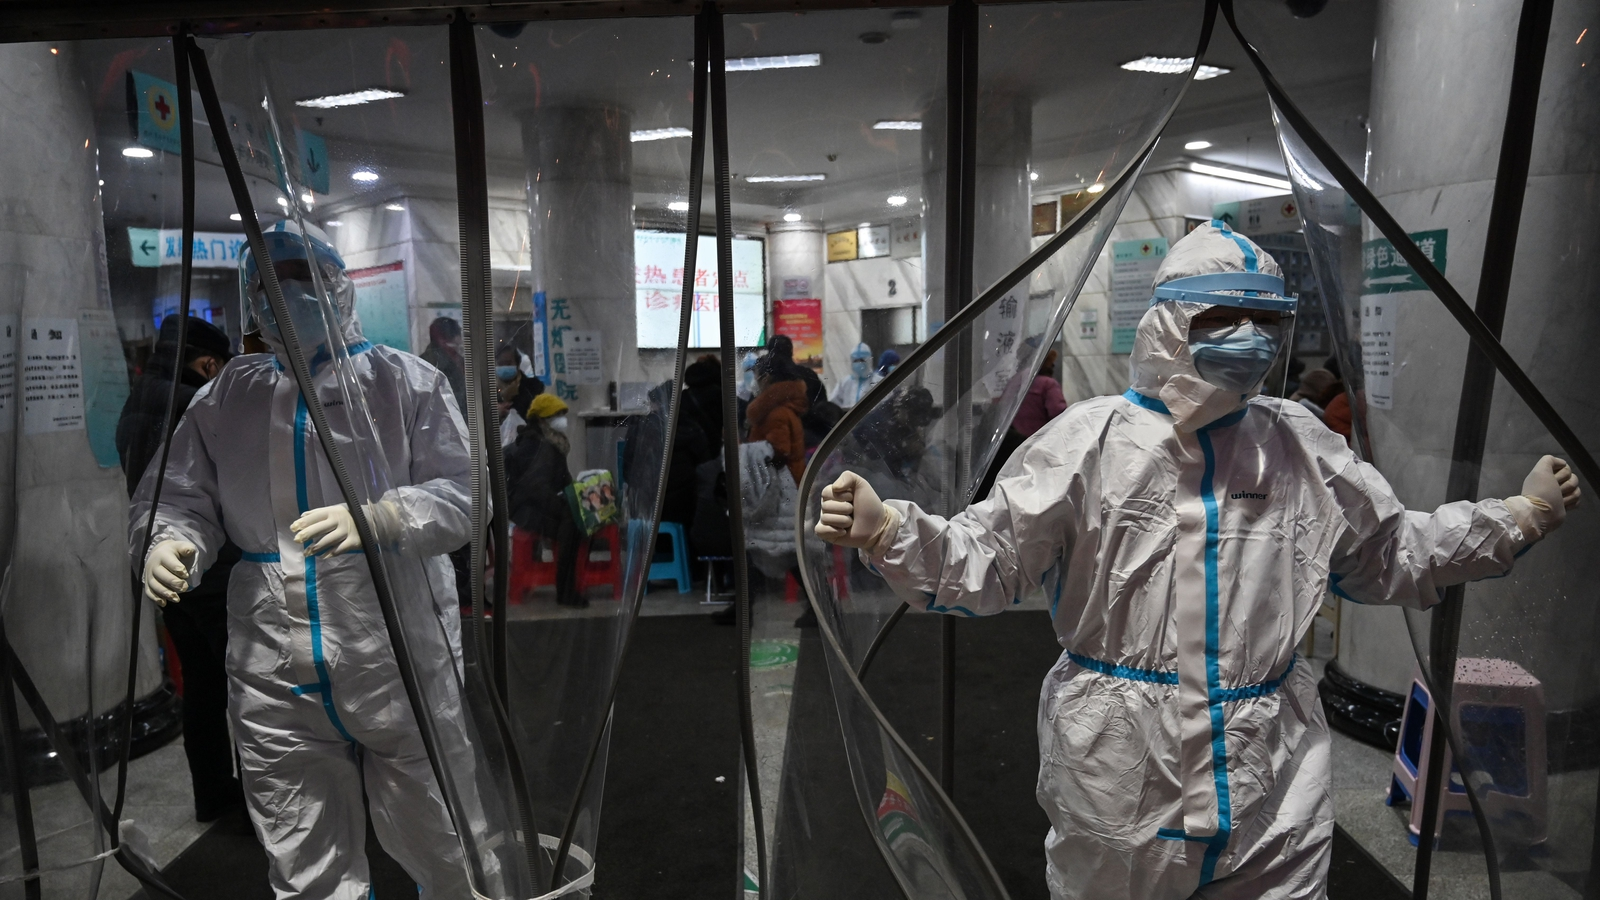 Image - Medical staff members at the Wuhan Red Cross Hospital on 25 January 2020